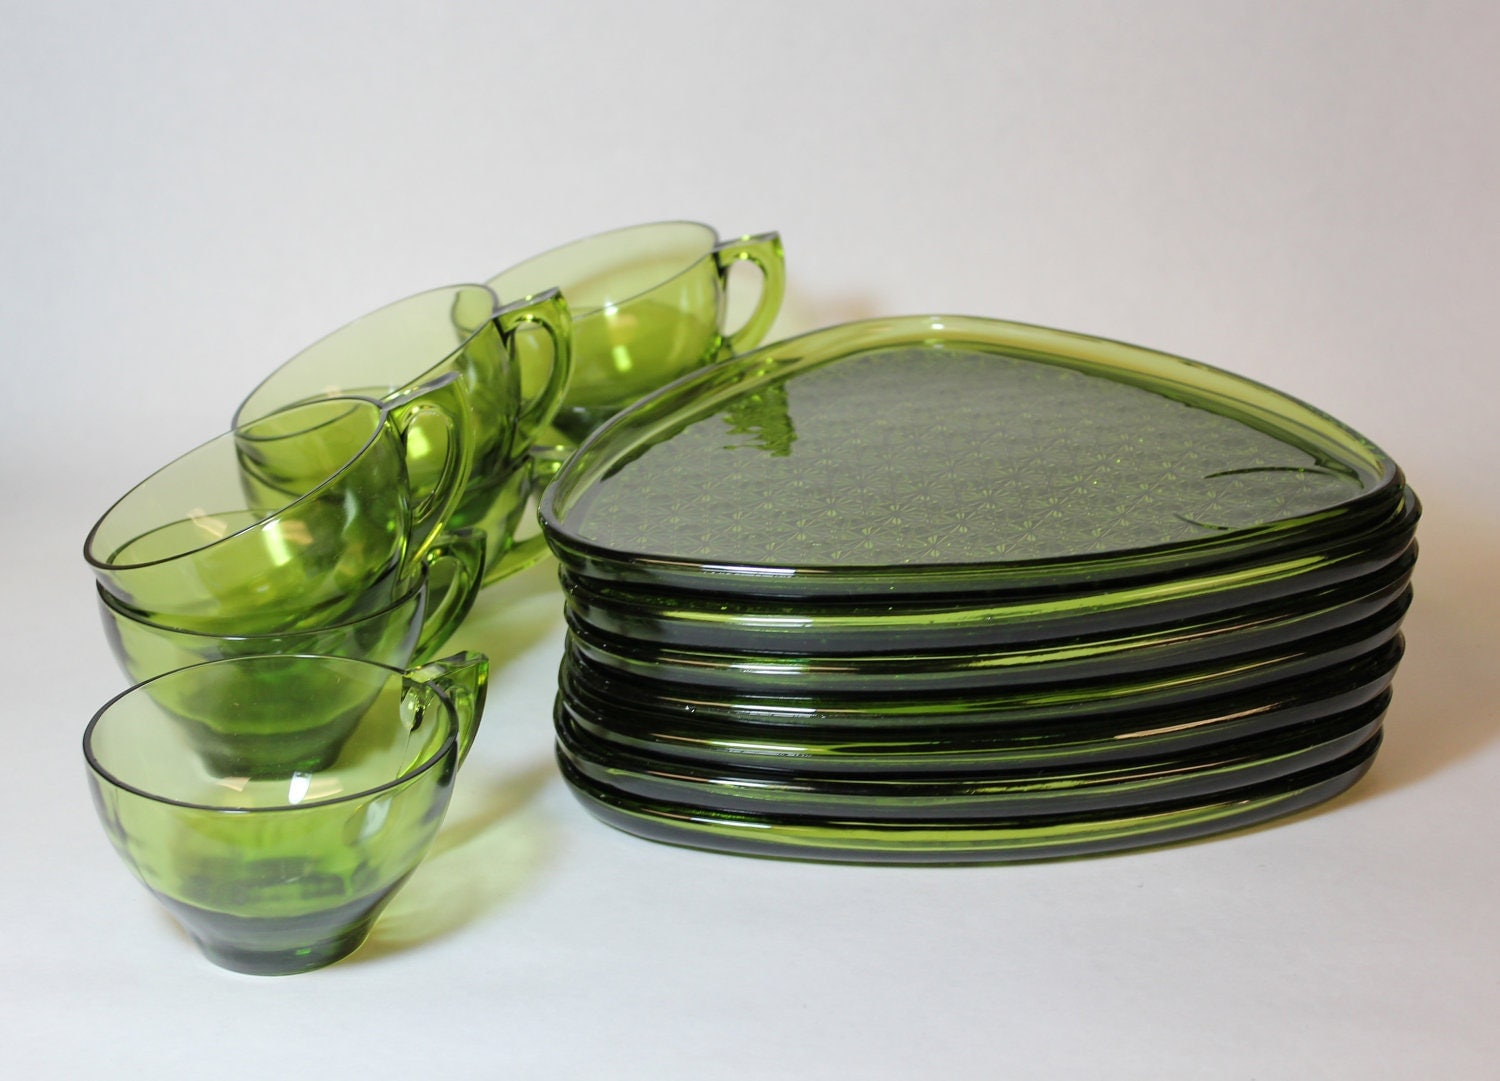 GLASS TEA SET - Mid century, retro triangle snack plates and tea cups in green glass x7 (c.1950s-60s)